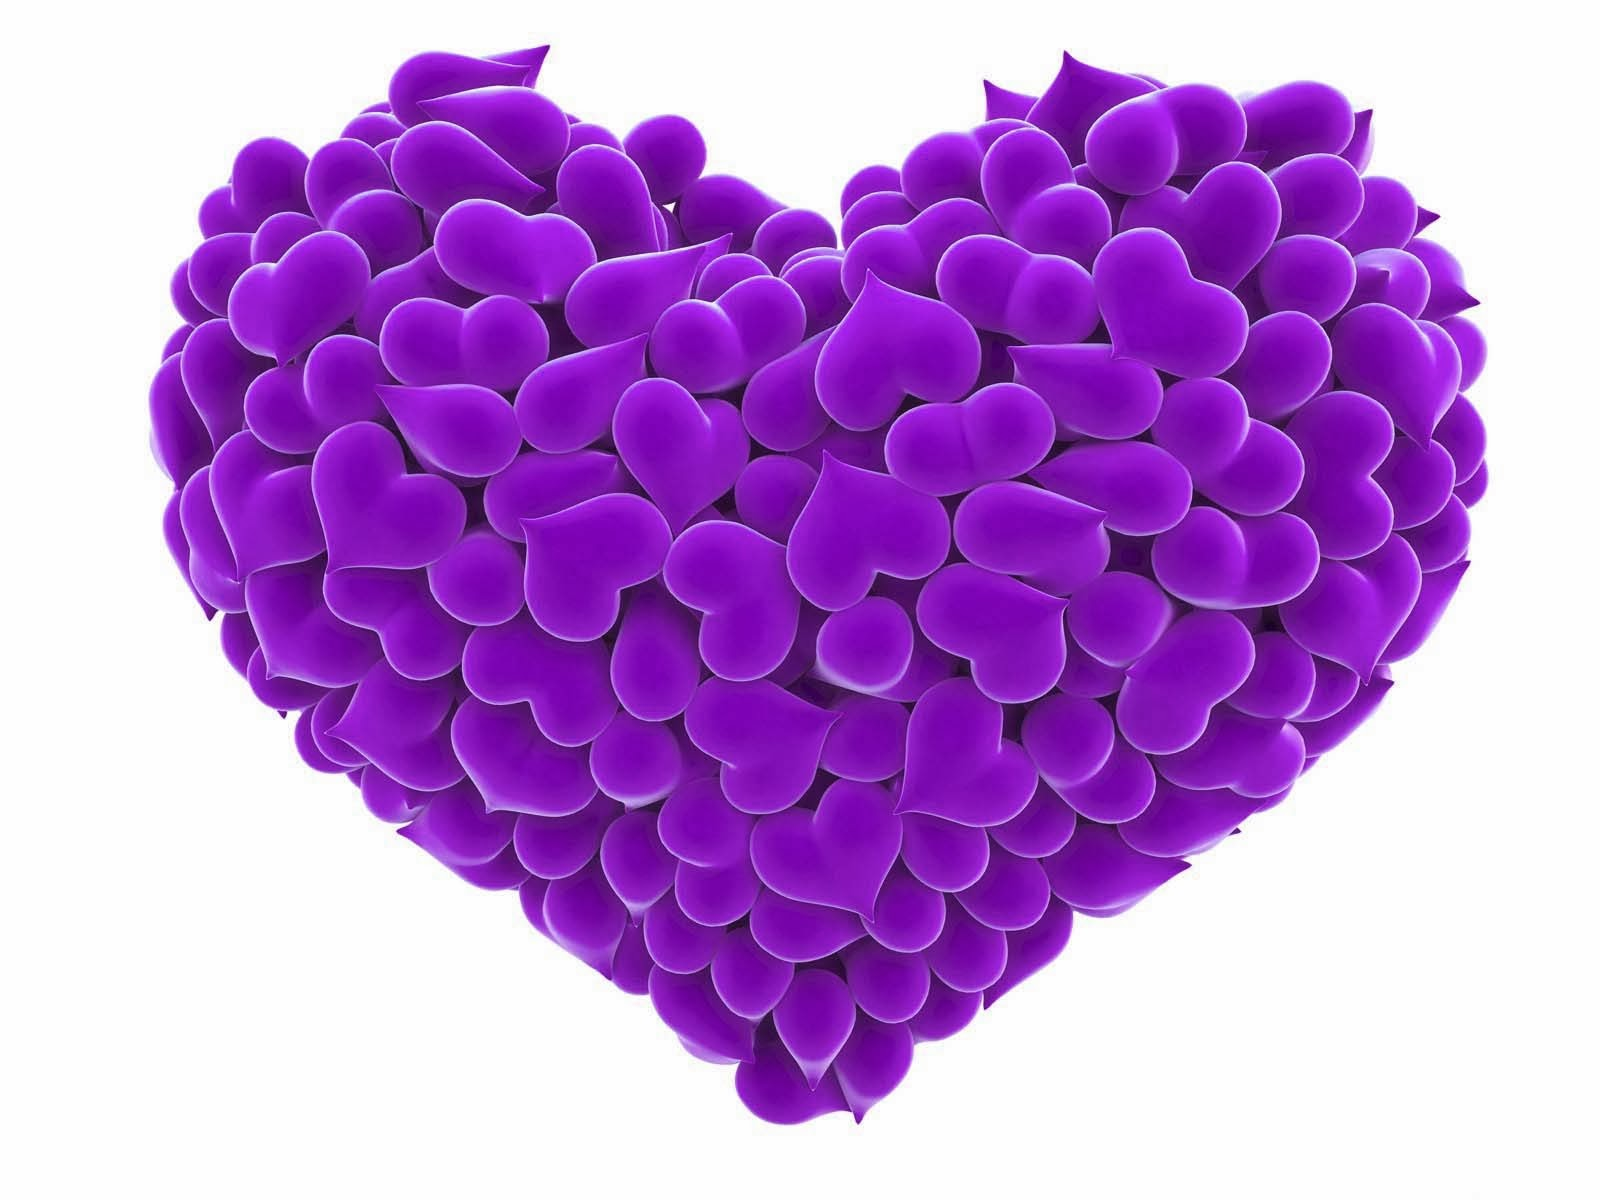 خلفيات للعشاق 2016 للعشاق 2016 heart-love-purple-co